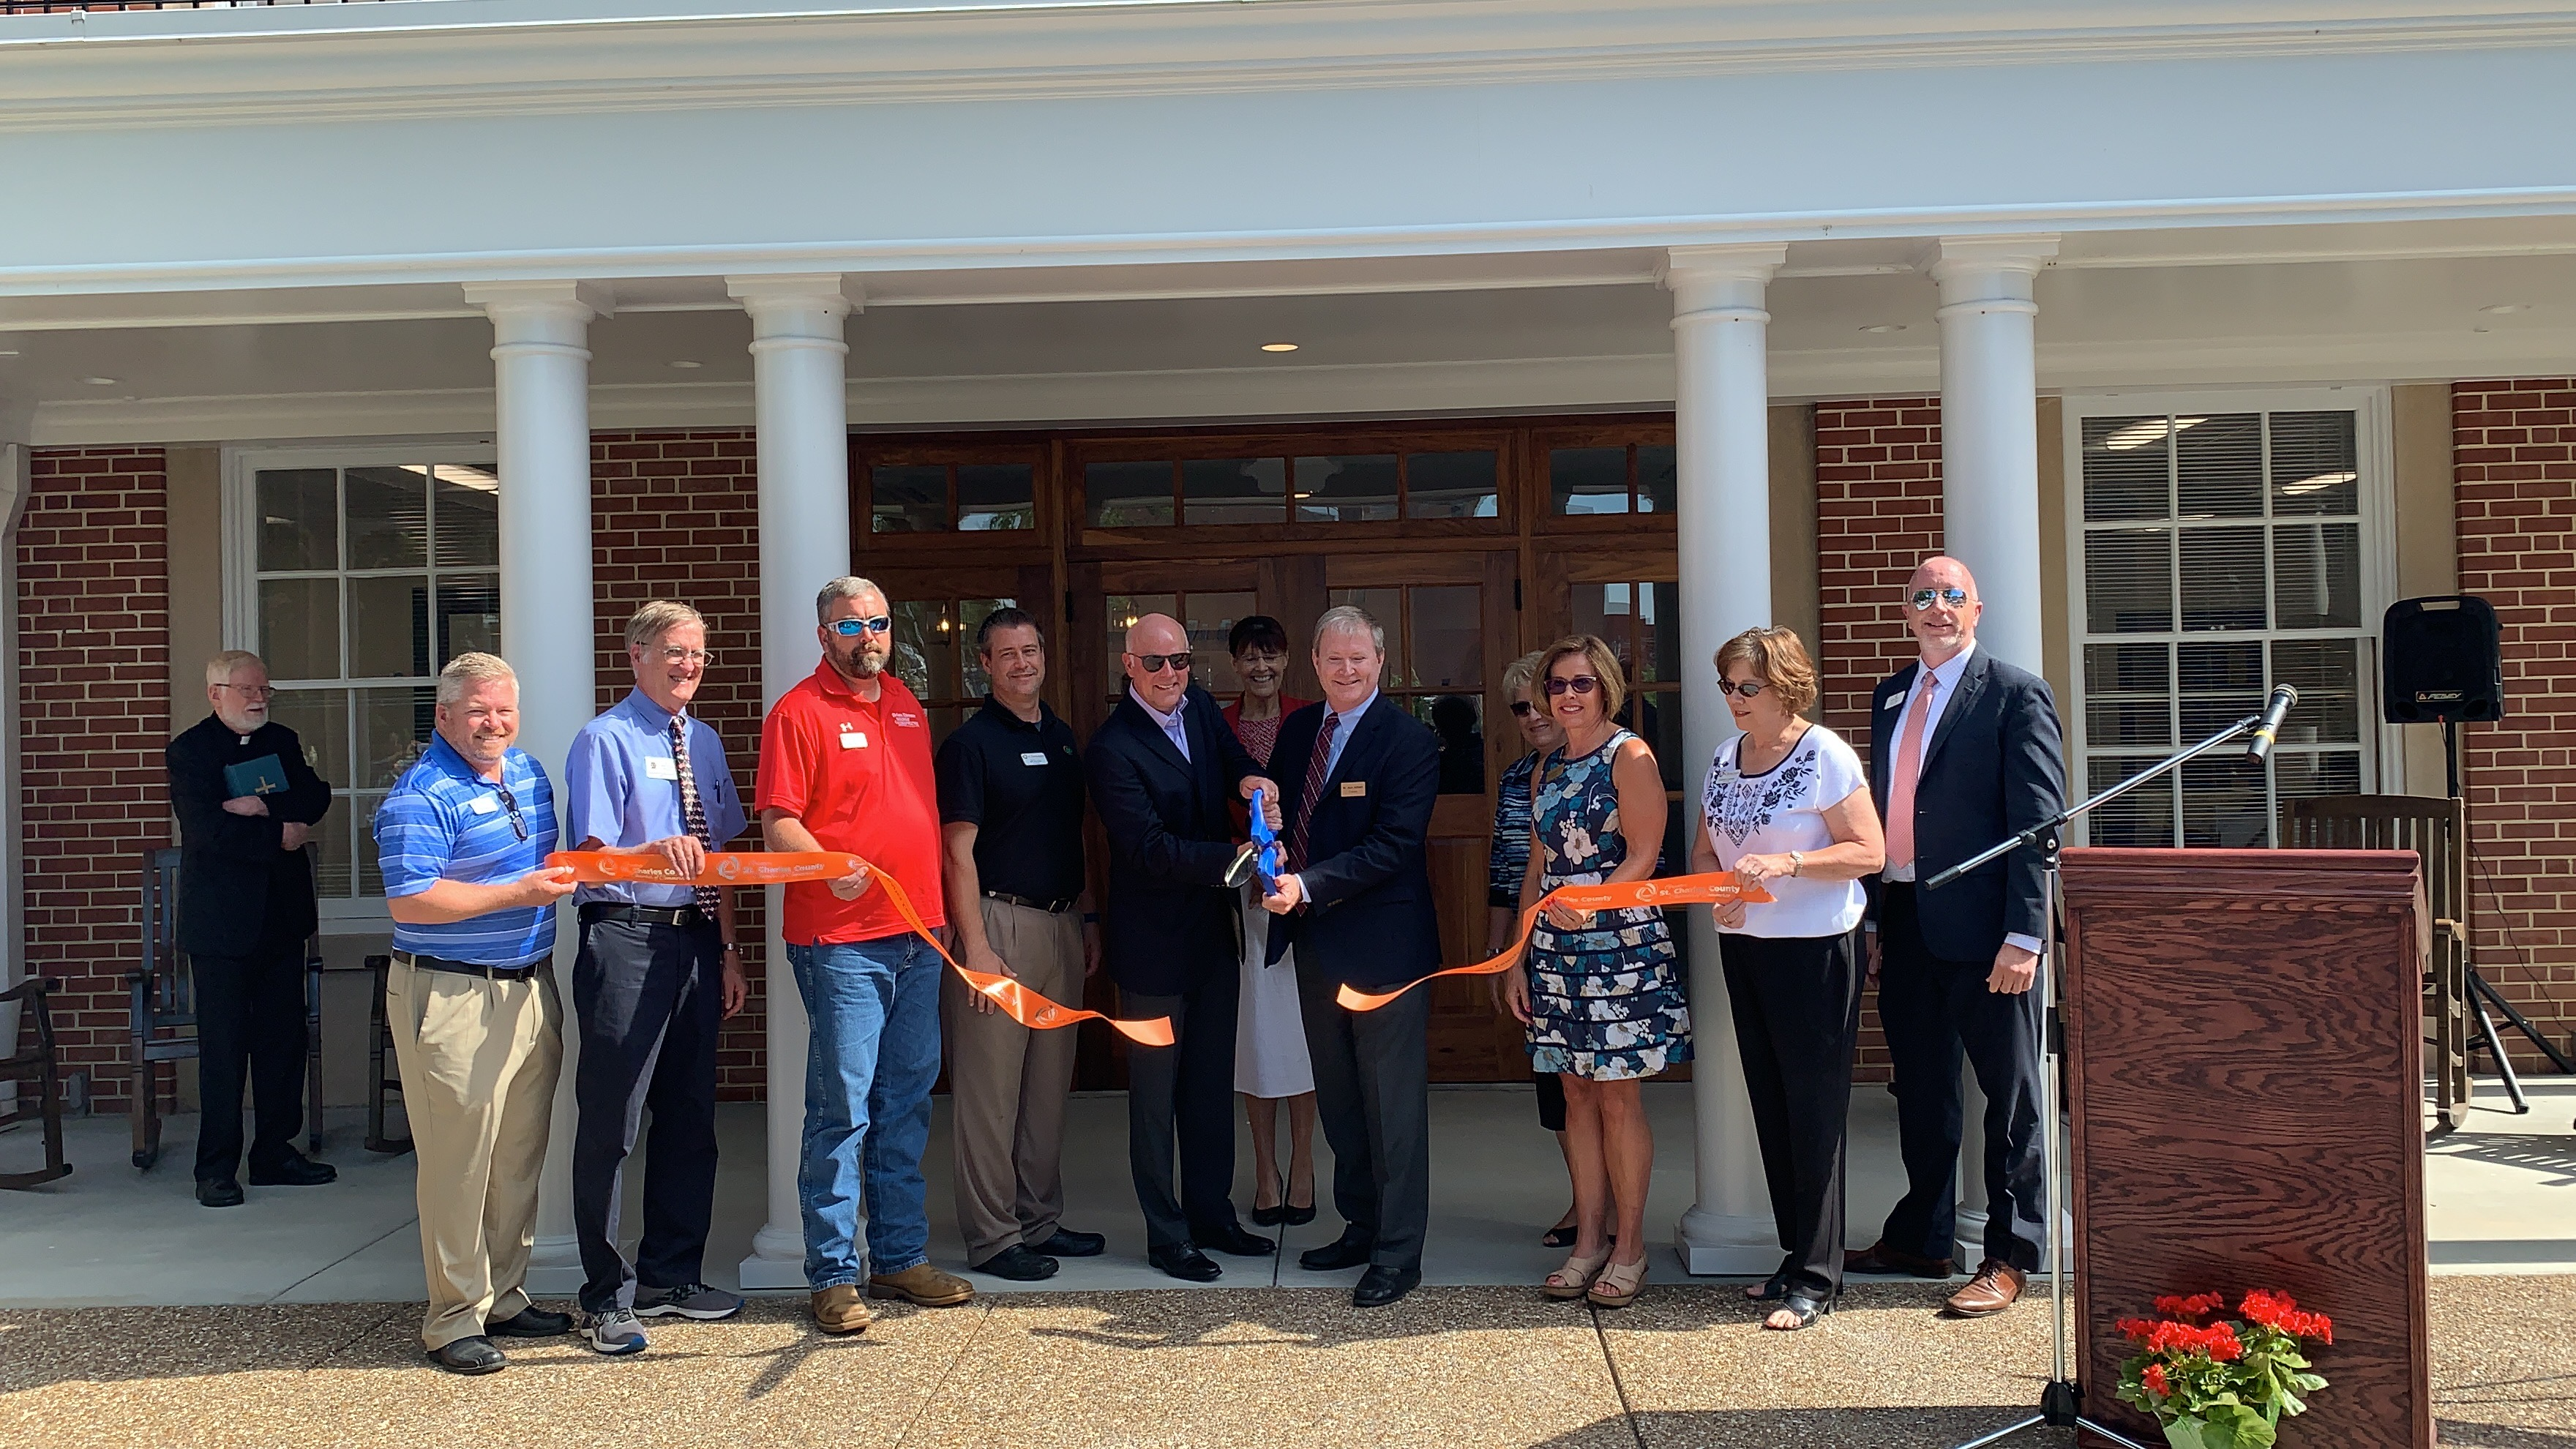 Academy of the Sacred Heart Celebrates New Entrance with Ribbon Cutting Dedication